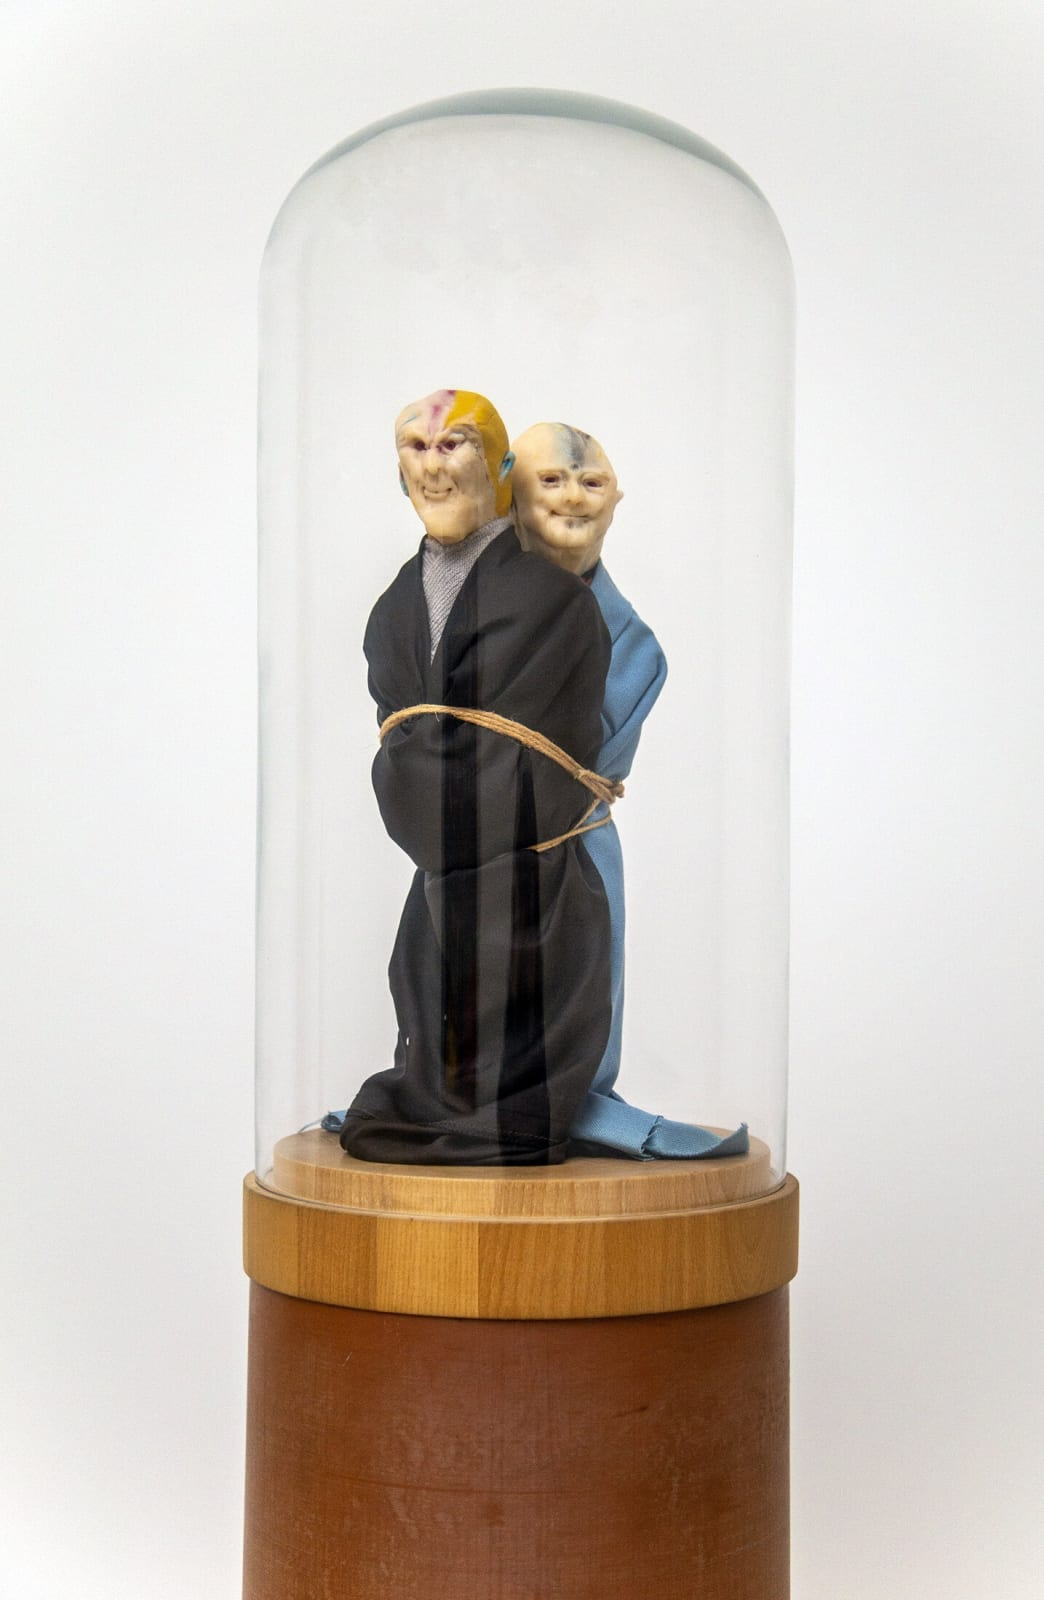 Thomas Schütte United Enemies 1994-1995 fimo, fabric, wood, glass and PVC 73 1/2 x 10 x 10 inches 186.7 x 25.4 x 25.4 cm More Info